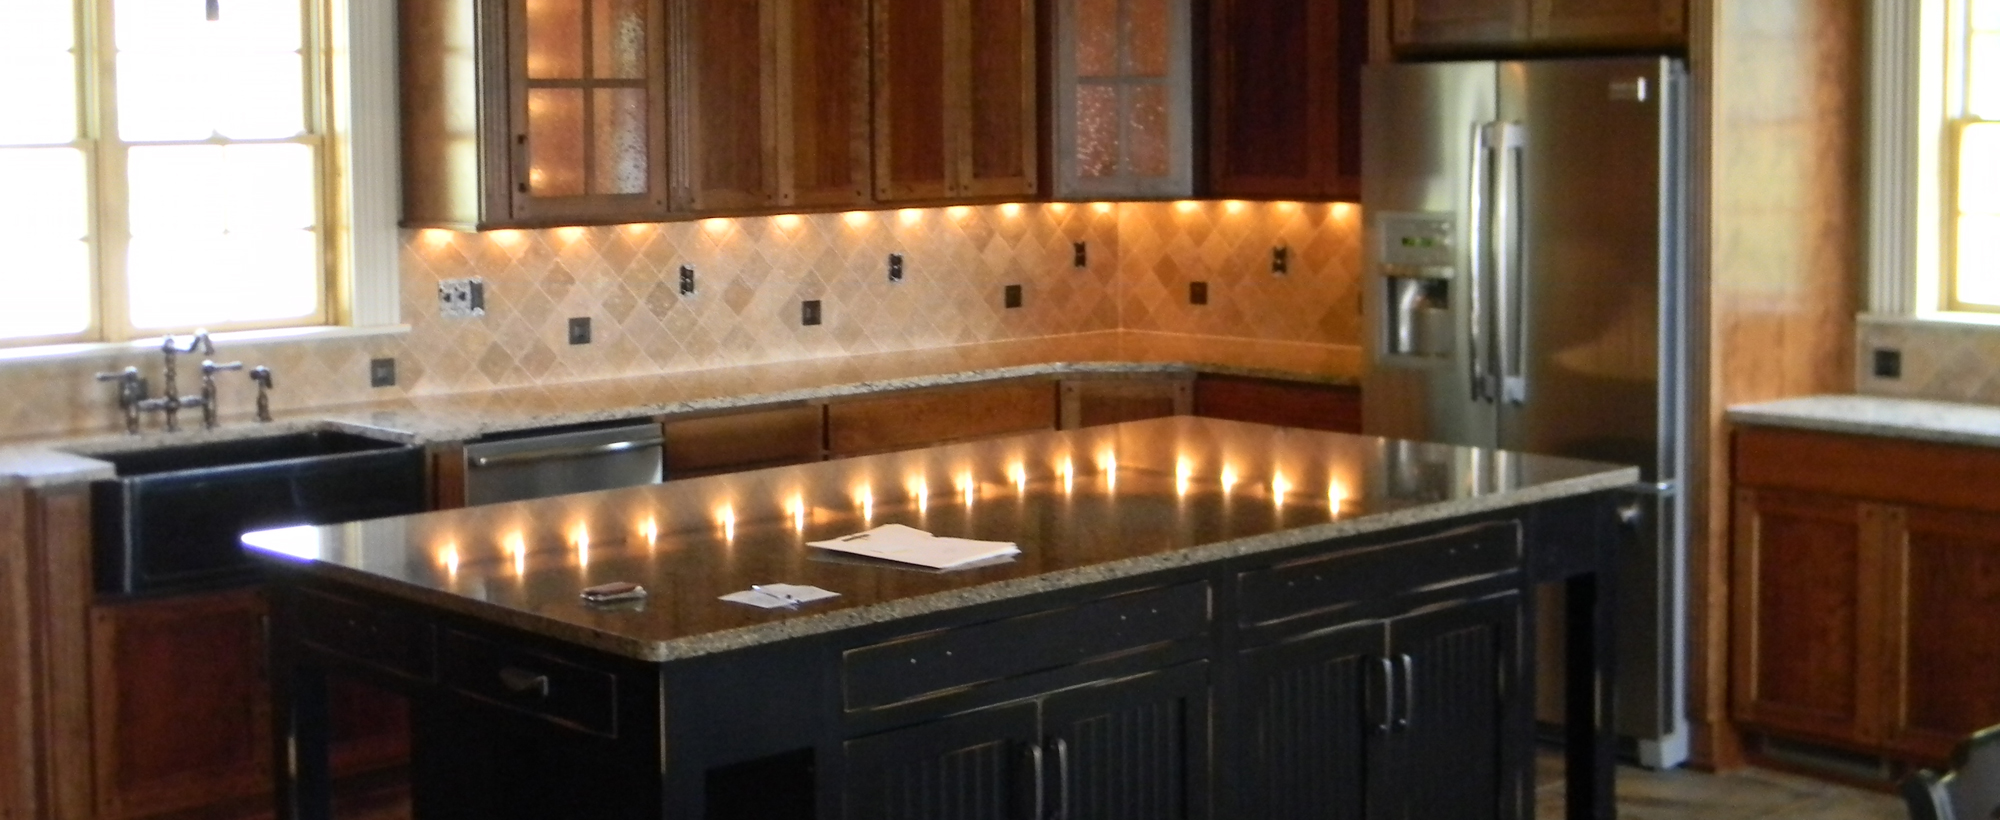 commercial kitchen floor coverings bobs furniture island cabinets superior floorcoverings and kitchens